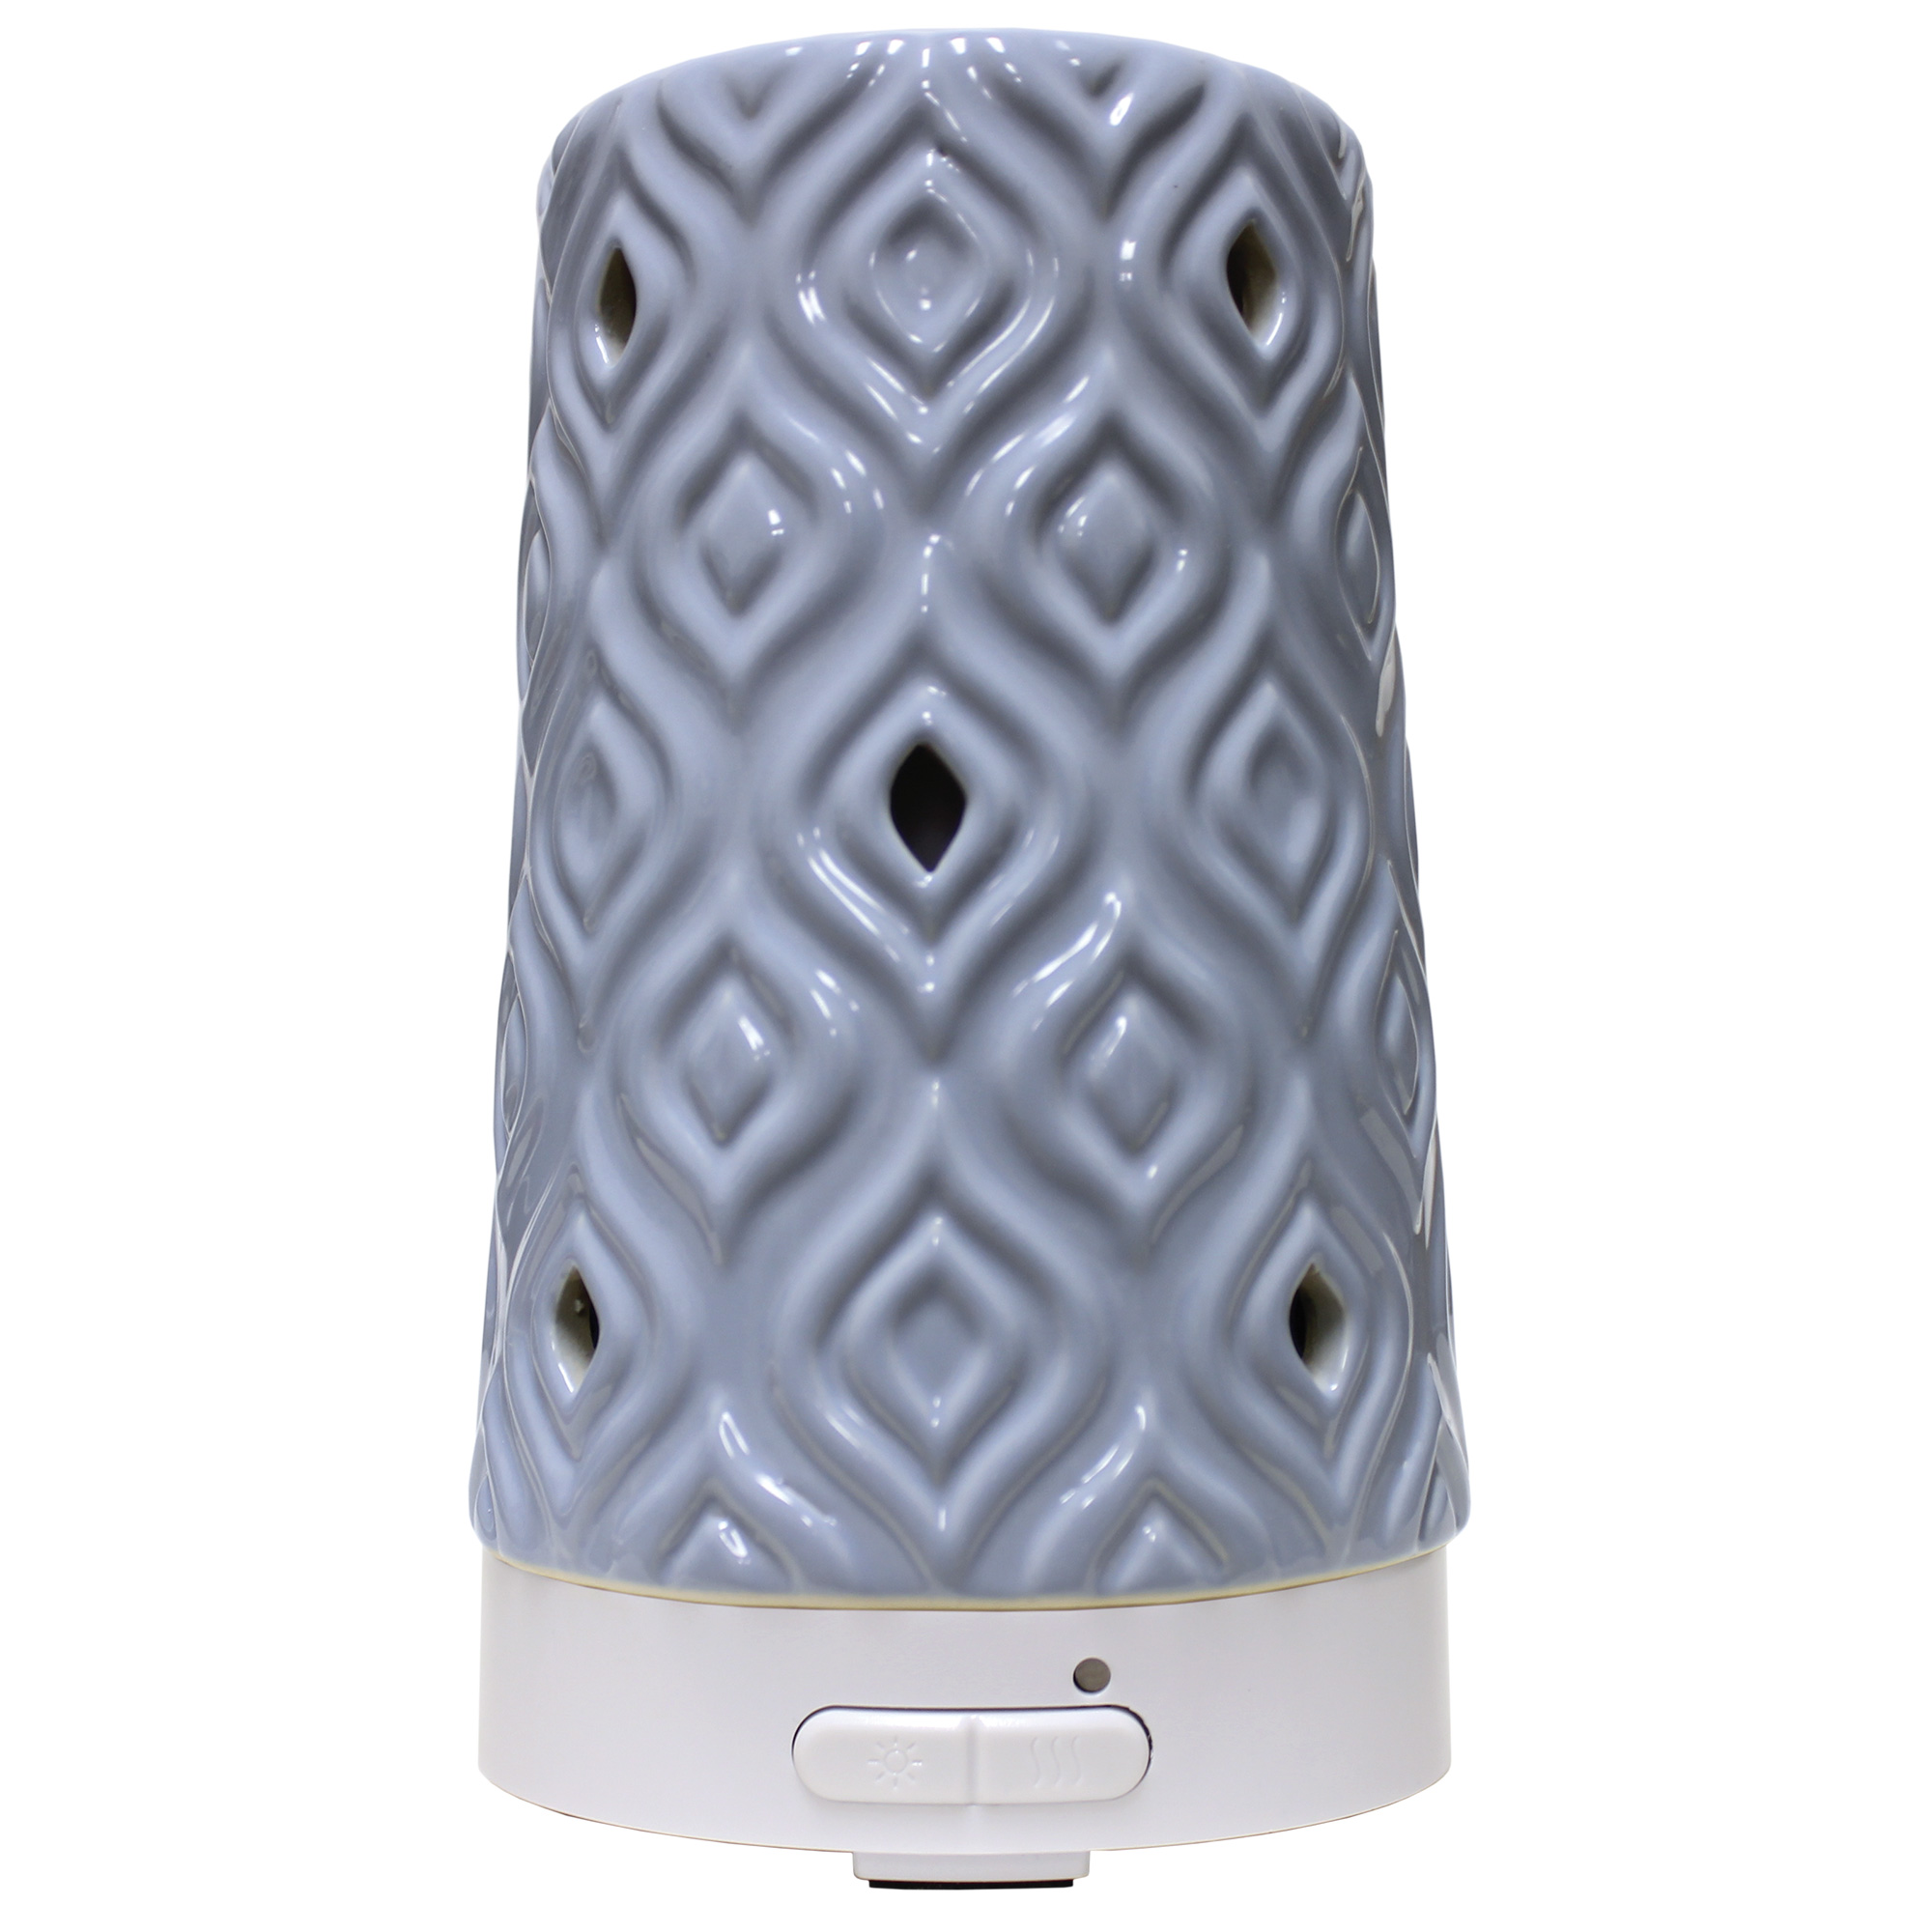 RAIN DROPS ULTRASONIC OIL DIFFUSERUPC# 674623018041